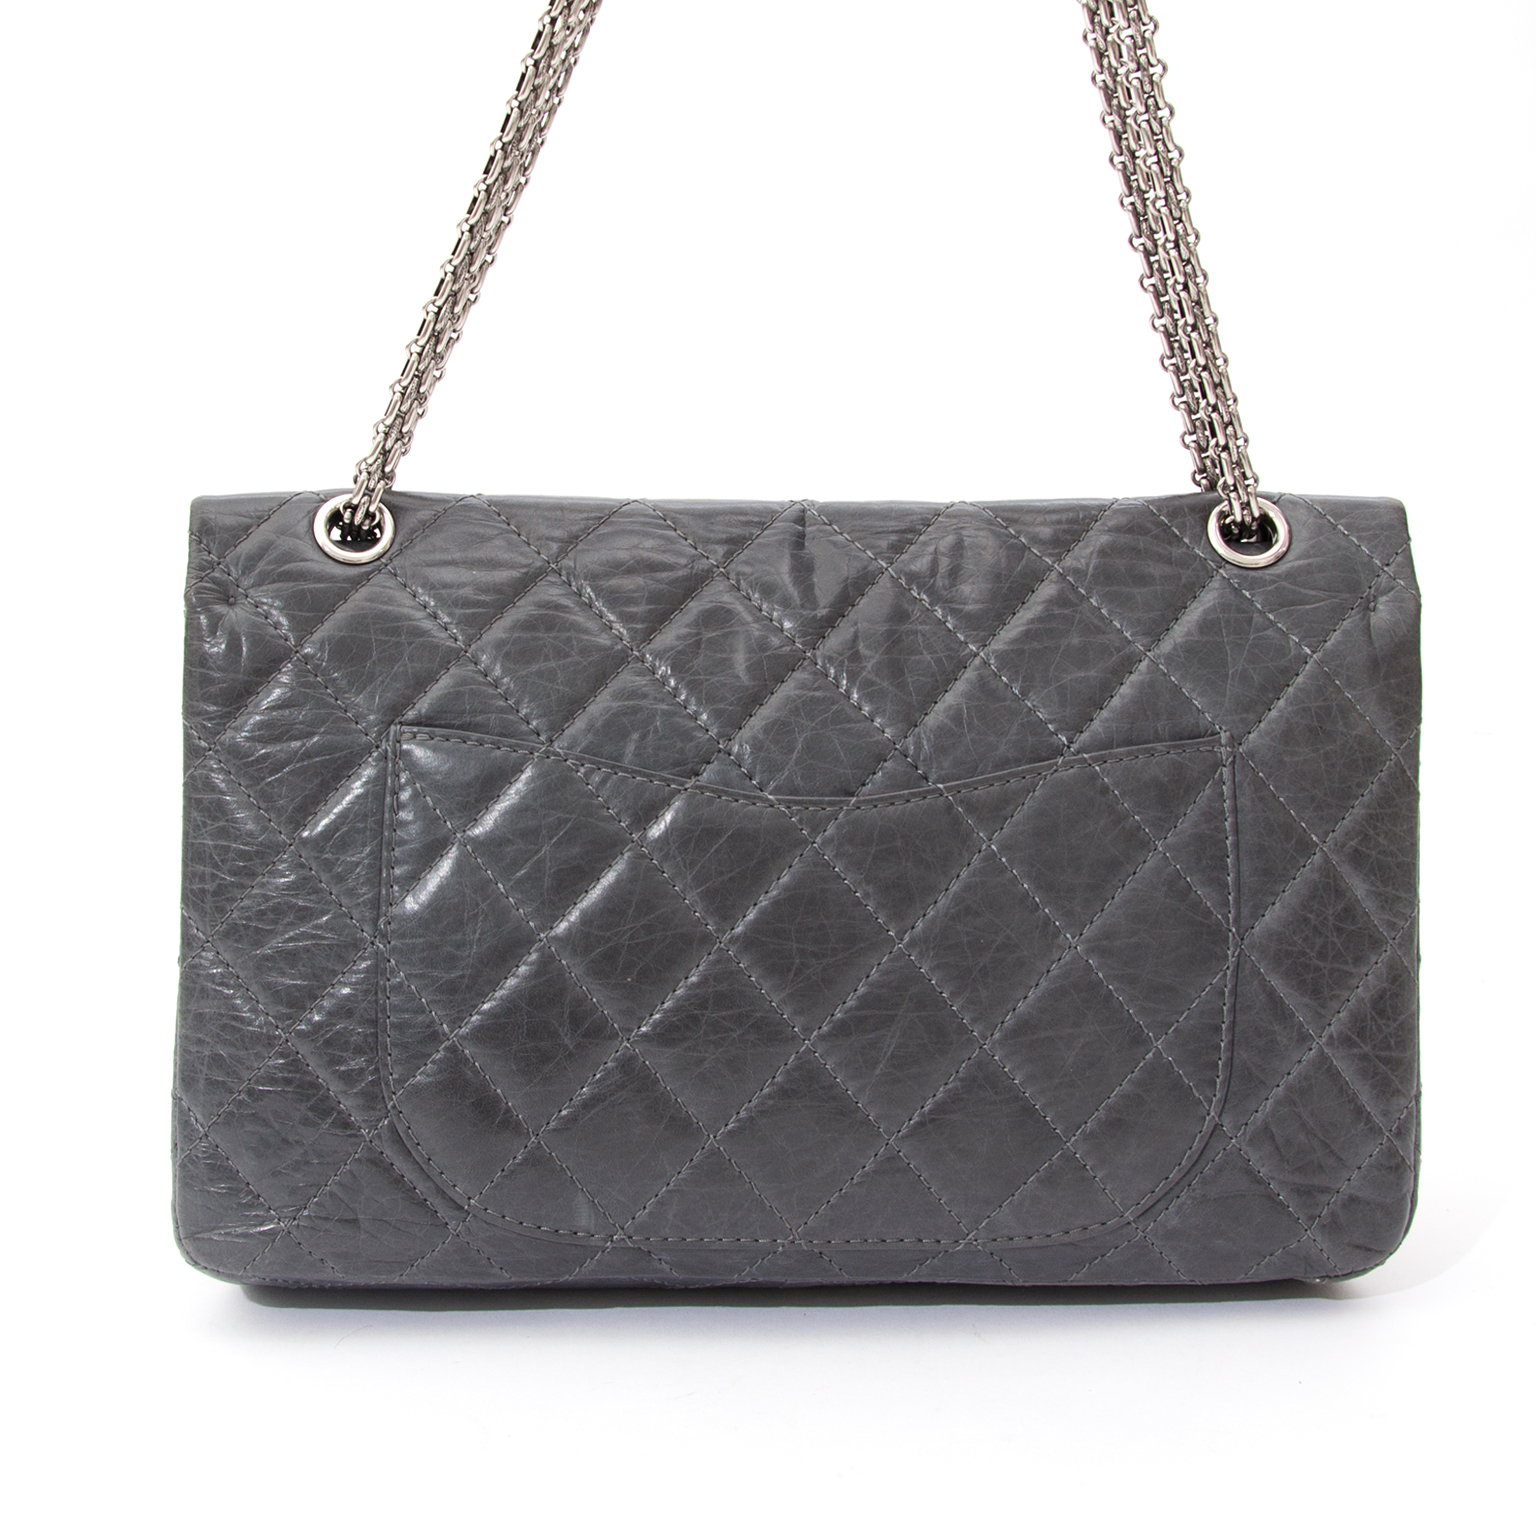 Labellov provides a platform to buy Chanel 2.55 Quilted Lambskin Classic  Flap Bag This is an authentic quilted lambskin Chanel 2.55 Flap ec733c67ba629